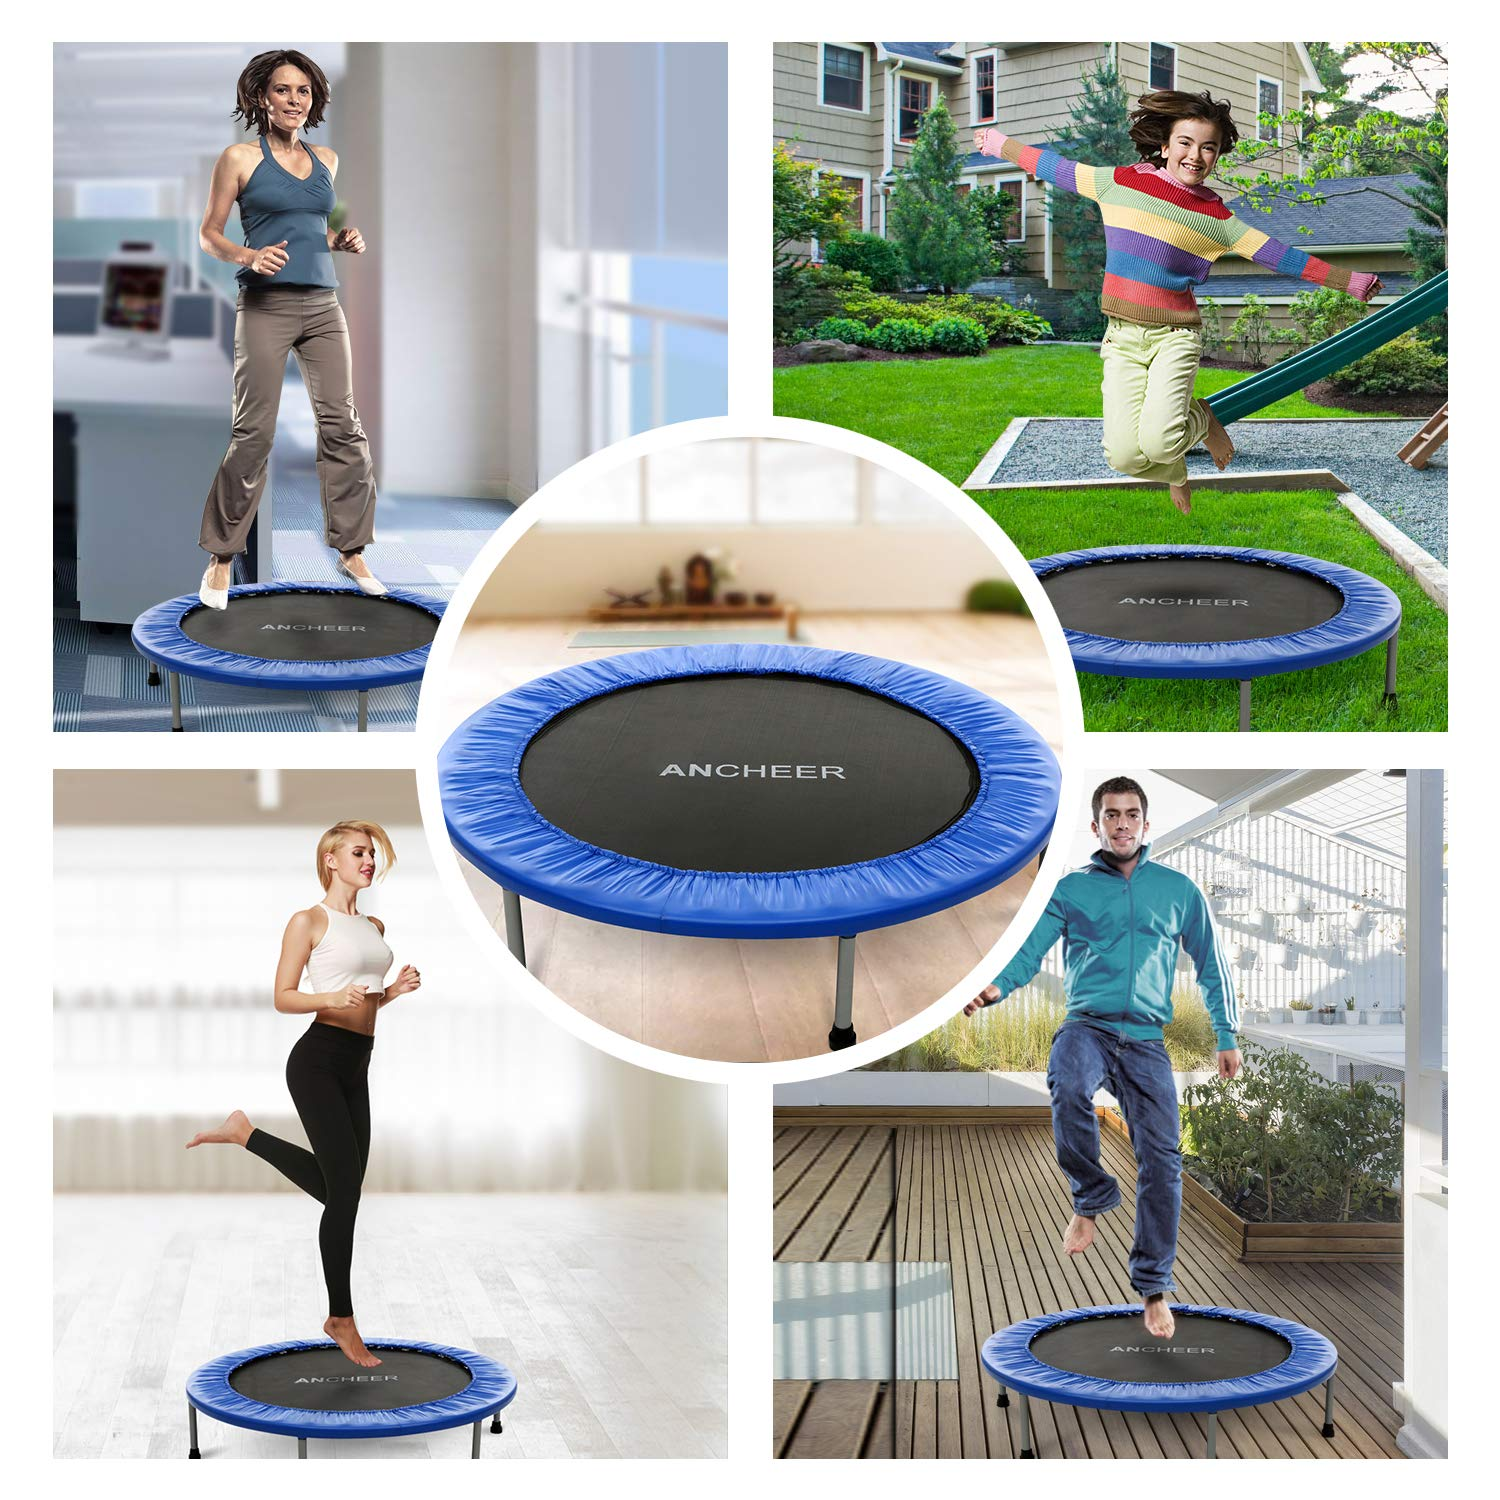 ANCHEER Rebounder Trampoline – For Budget Pick